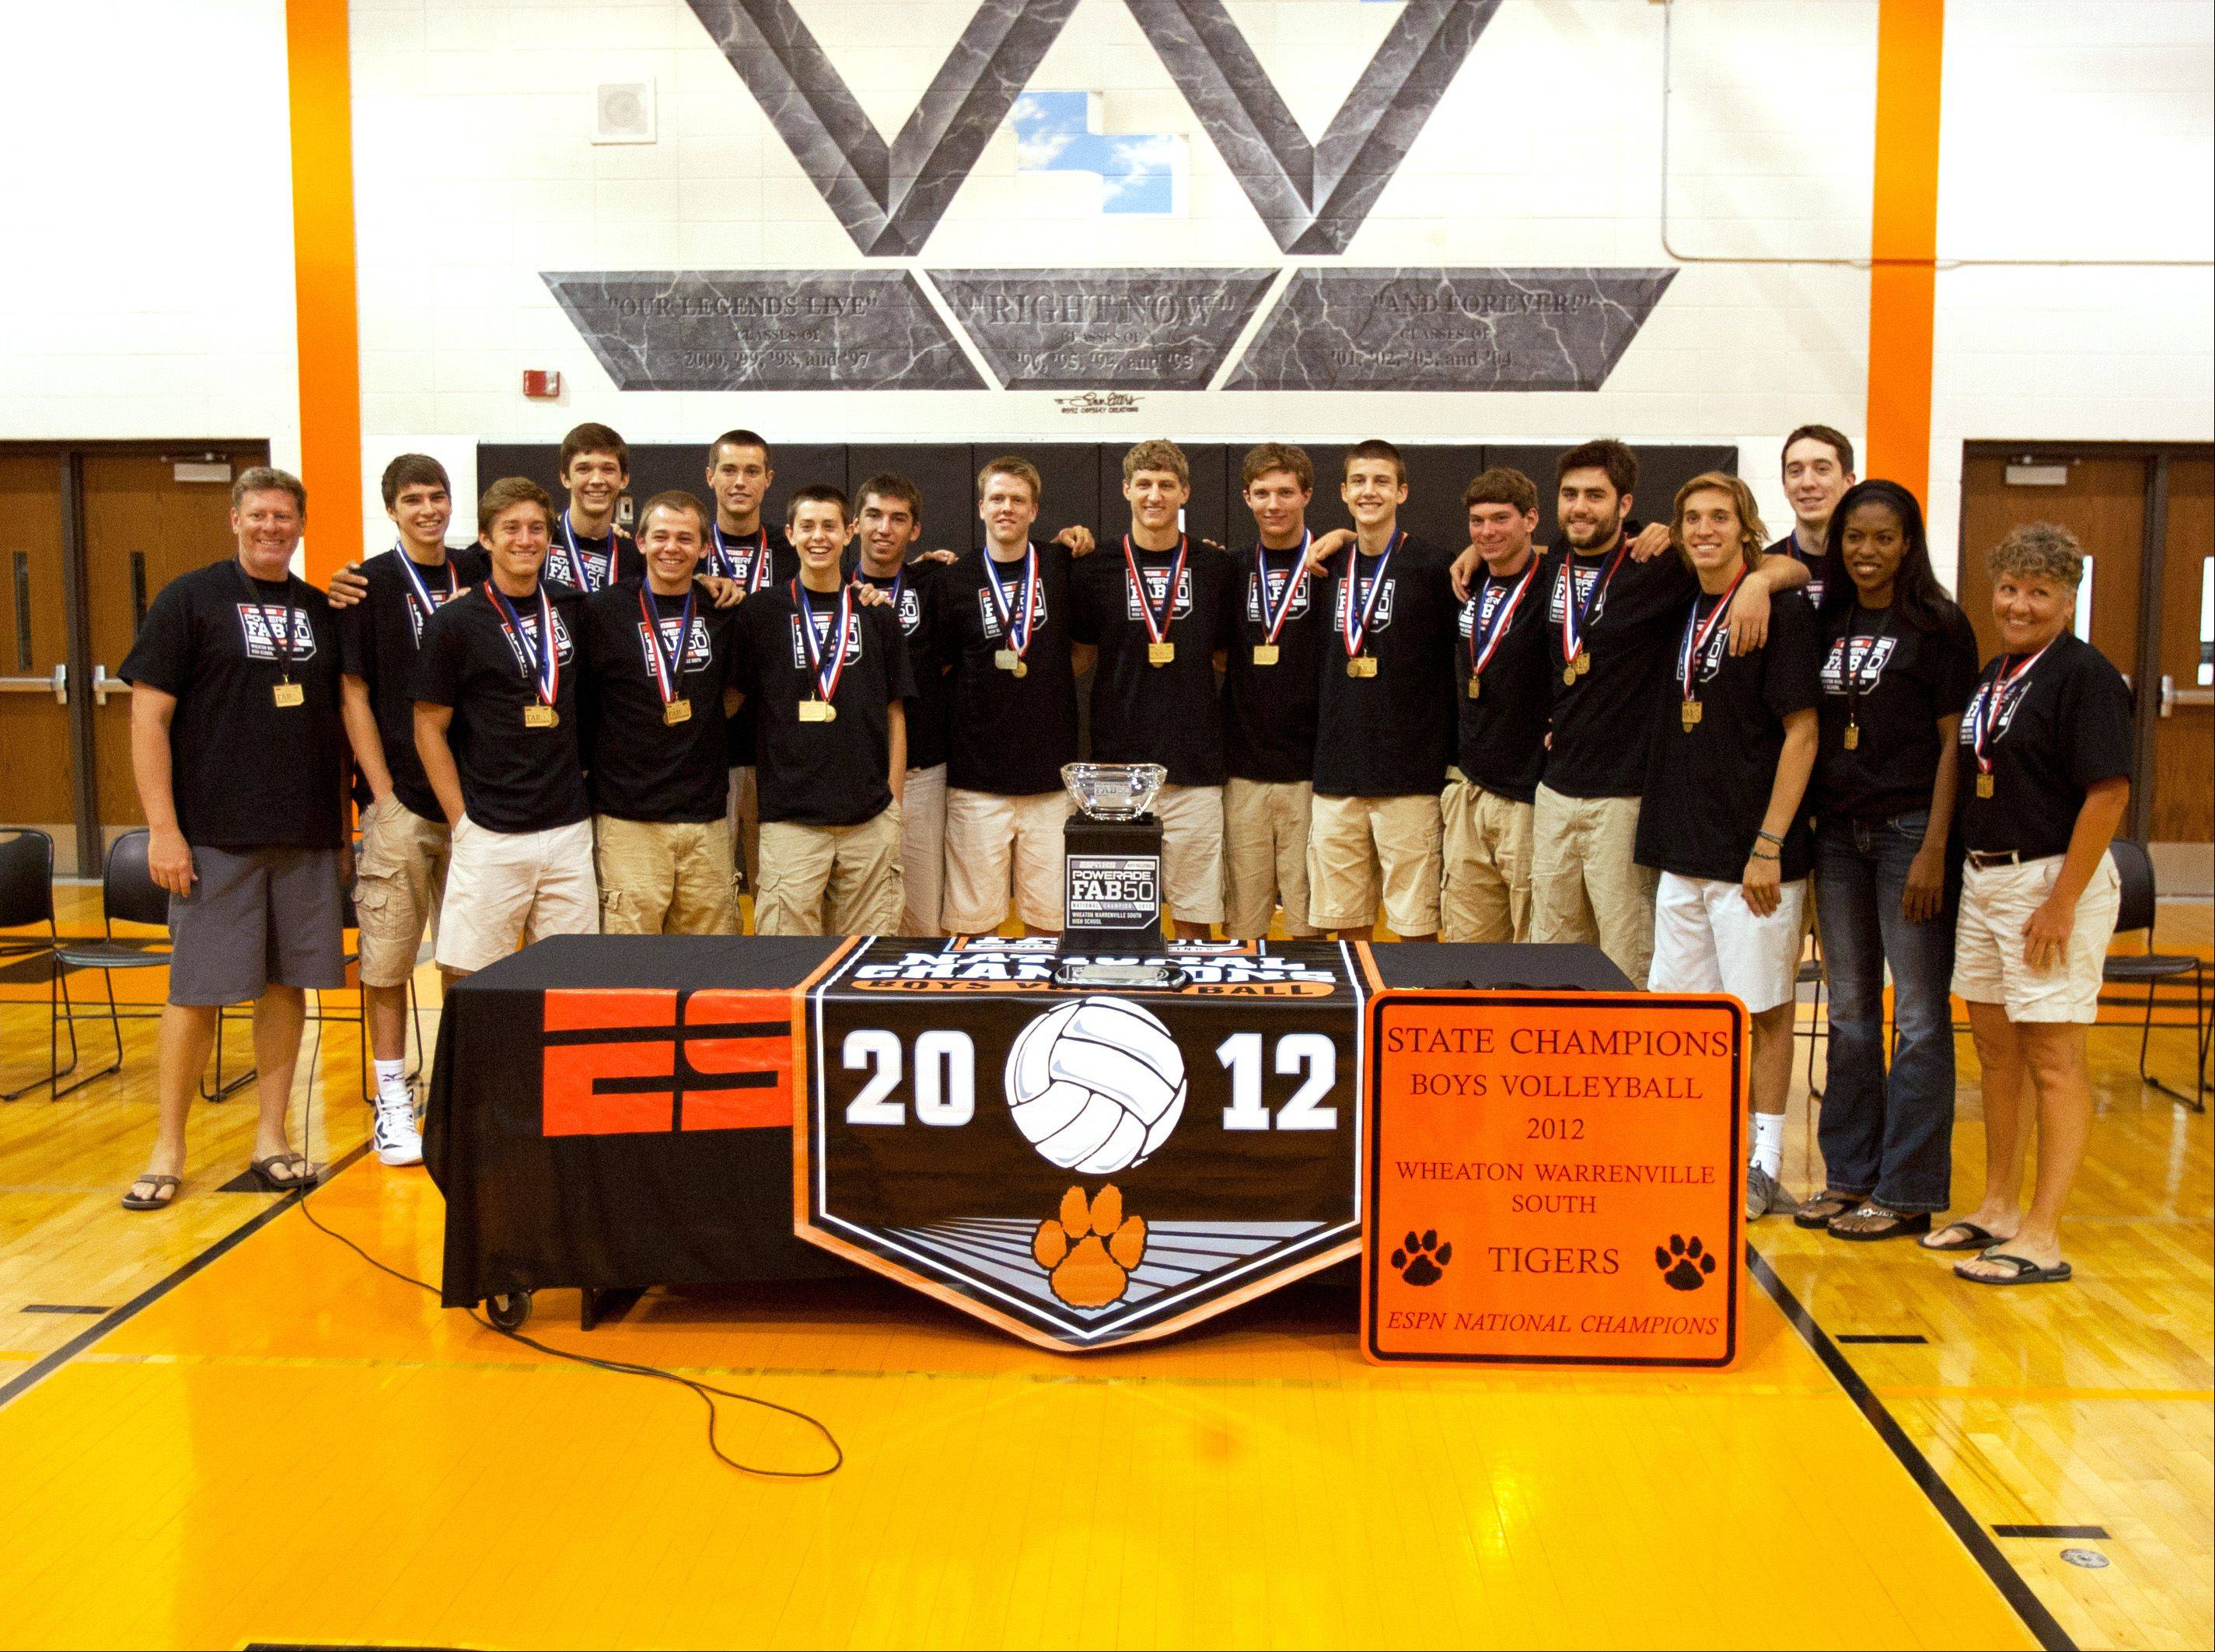 The Wheaton Warrenville South boys volleyball team were awarded a national title Friday by ESPNHS. The high school is the first in Illinois to receive such accolades.